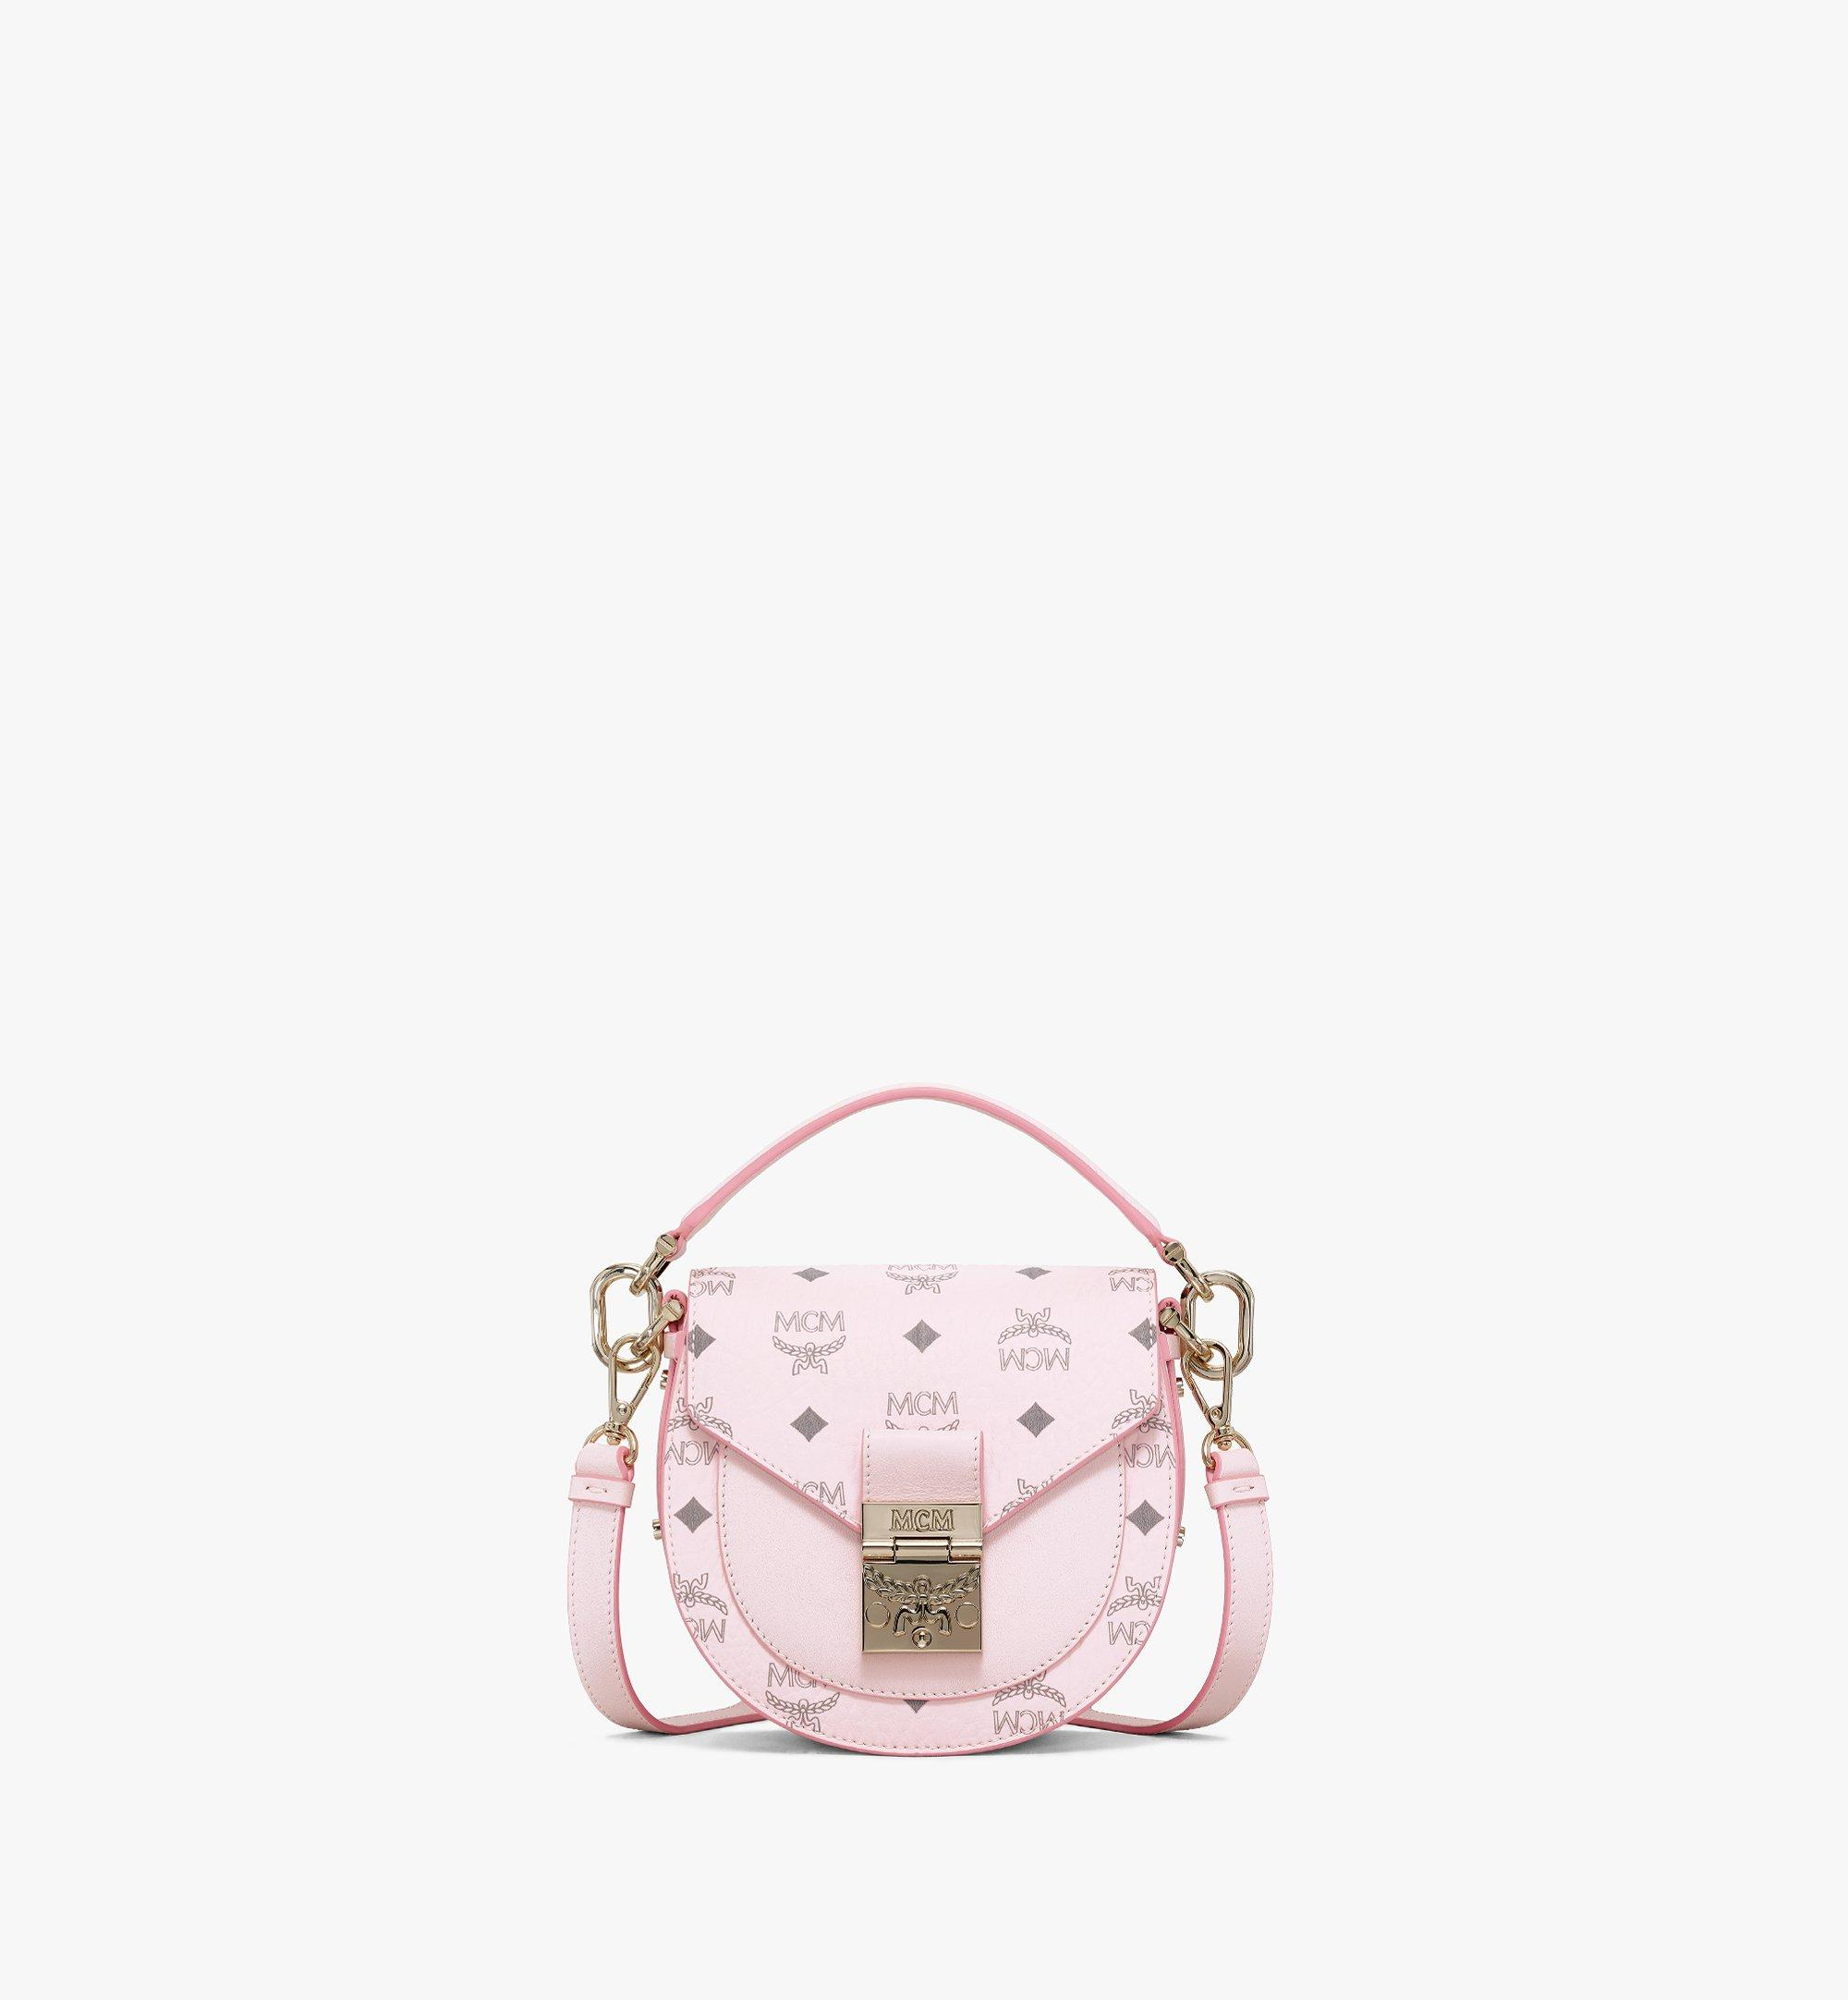 MCM Patricia Shoulder Bag in Visetos Pink MWSAAPA02QH001 Alternate View 1